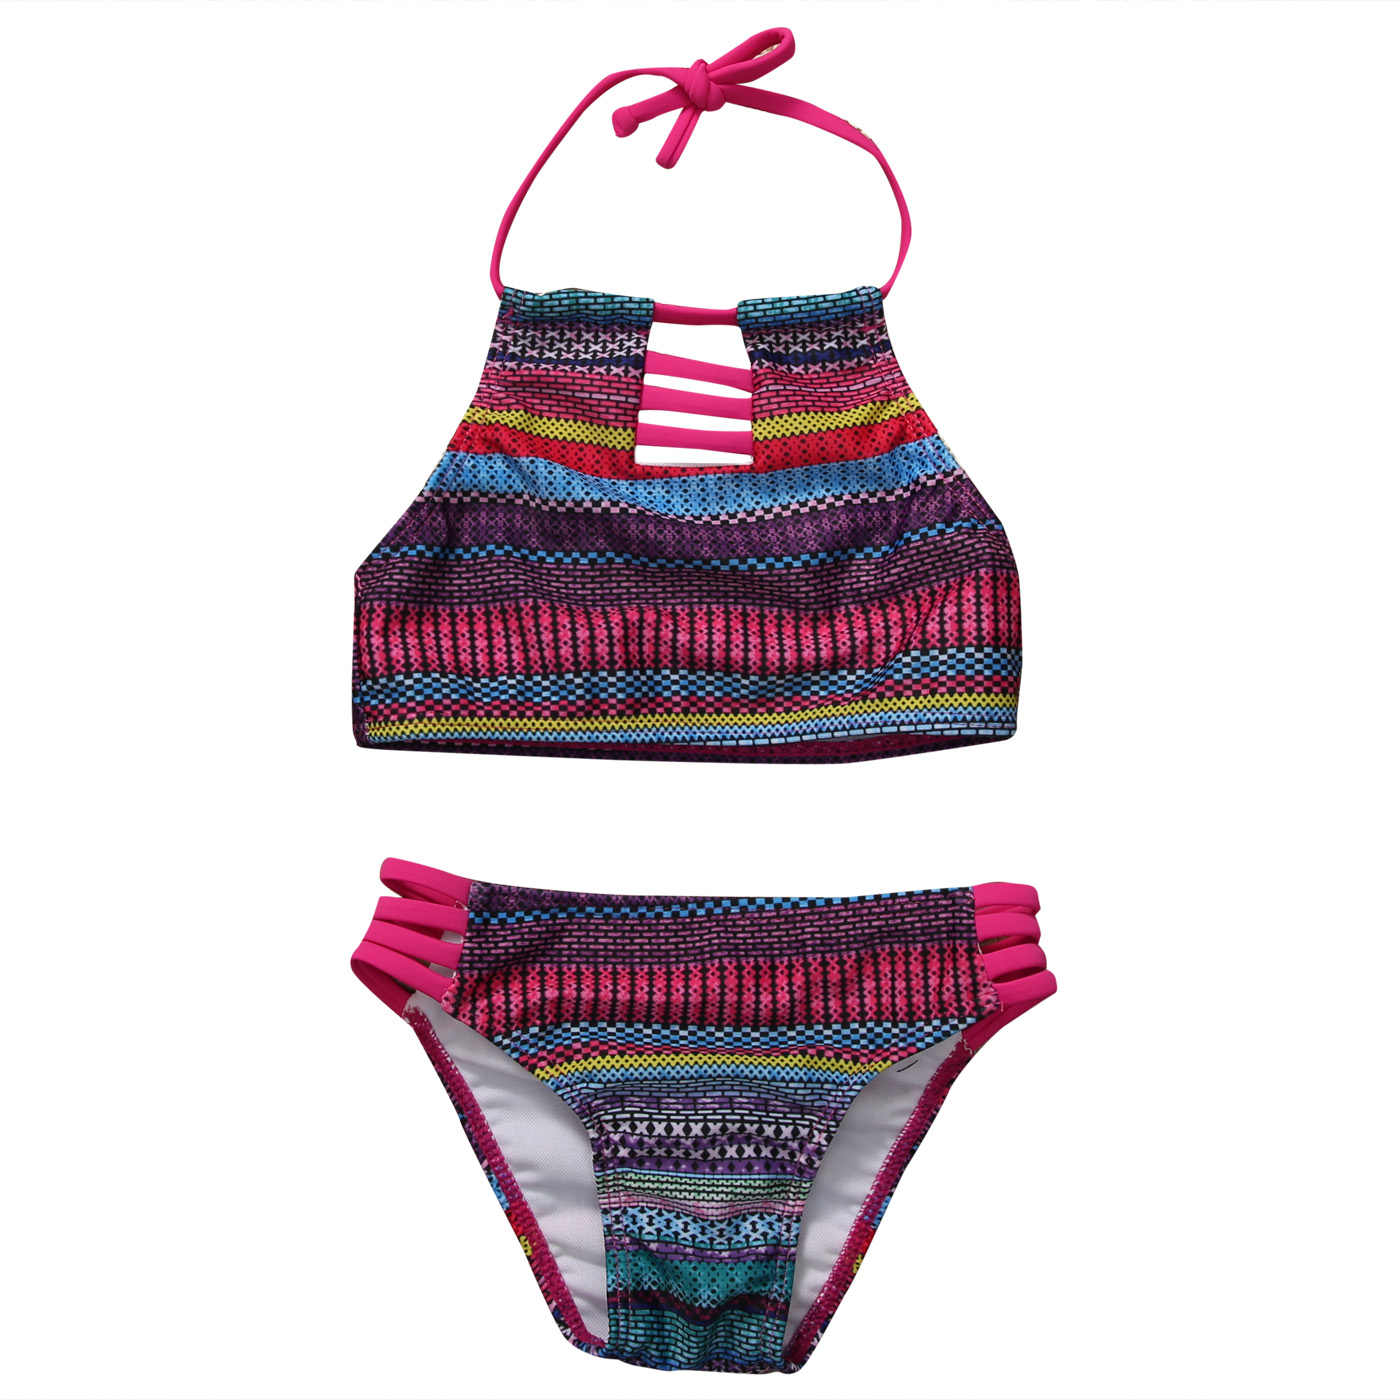 889398d9d0 2017 Baby Girls Summer Striped New Pretty Lovely Swimwear Kids Child  Swimsuit Bikini Set Swimsuit